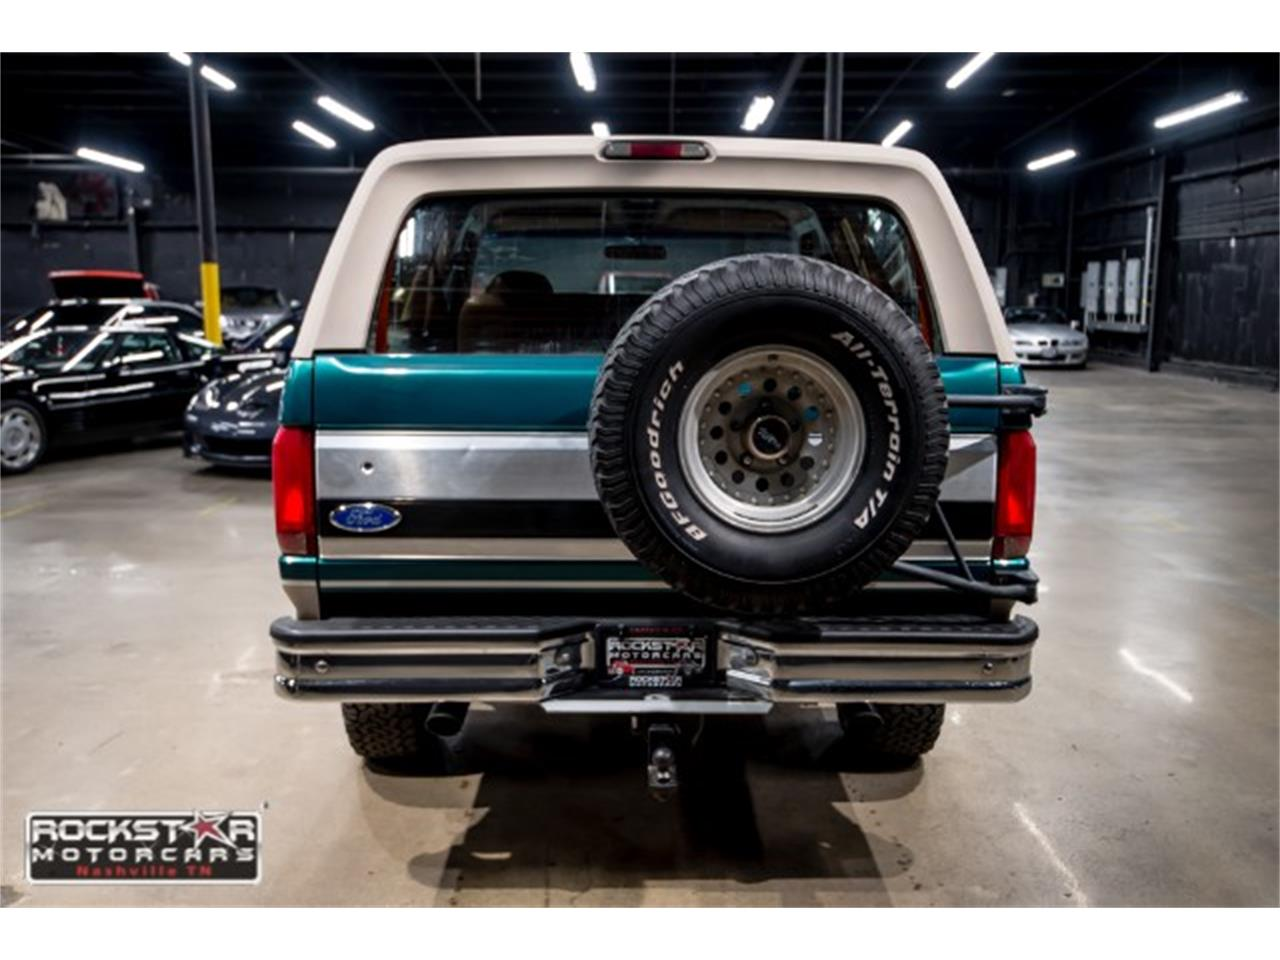 Large Picture of 1996 Ford Bronco located in Tennessee - $12,980.00 Offered by Rockstar Motorcars - MN1Y